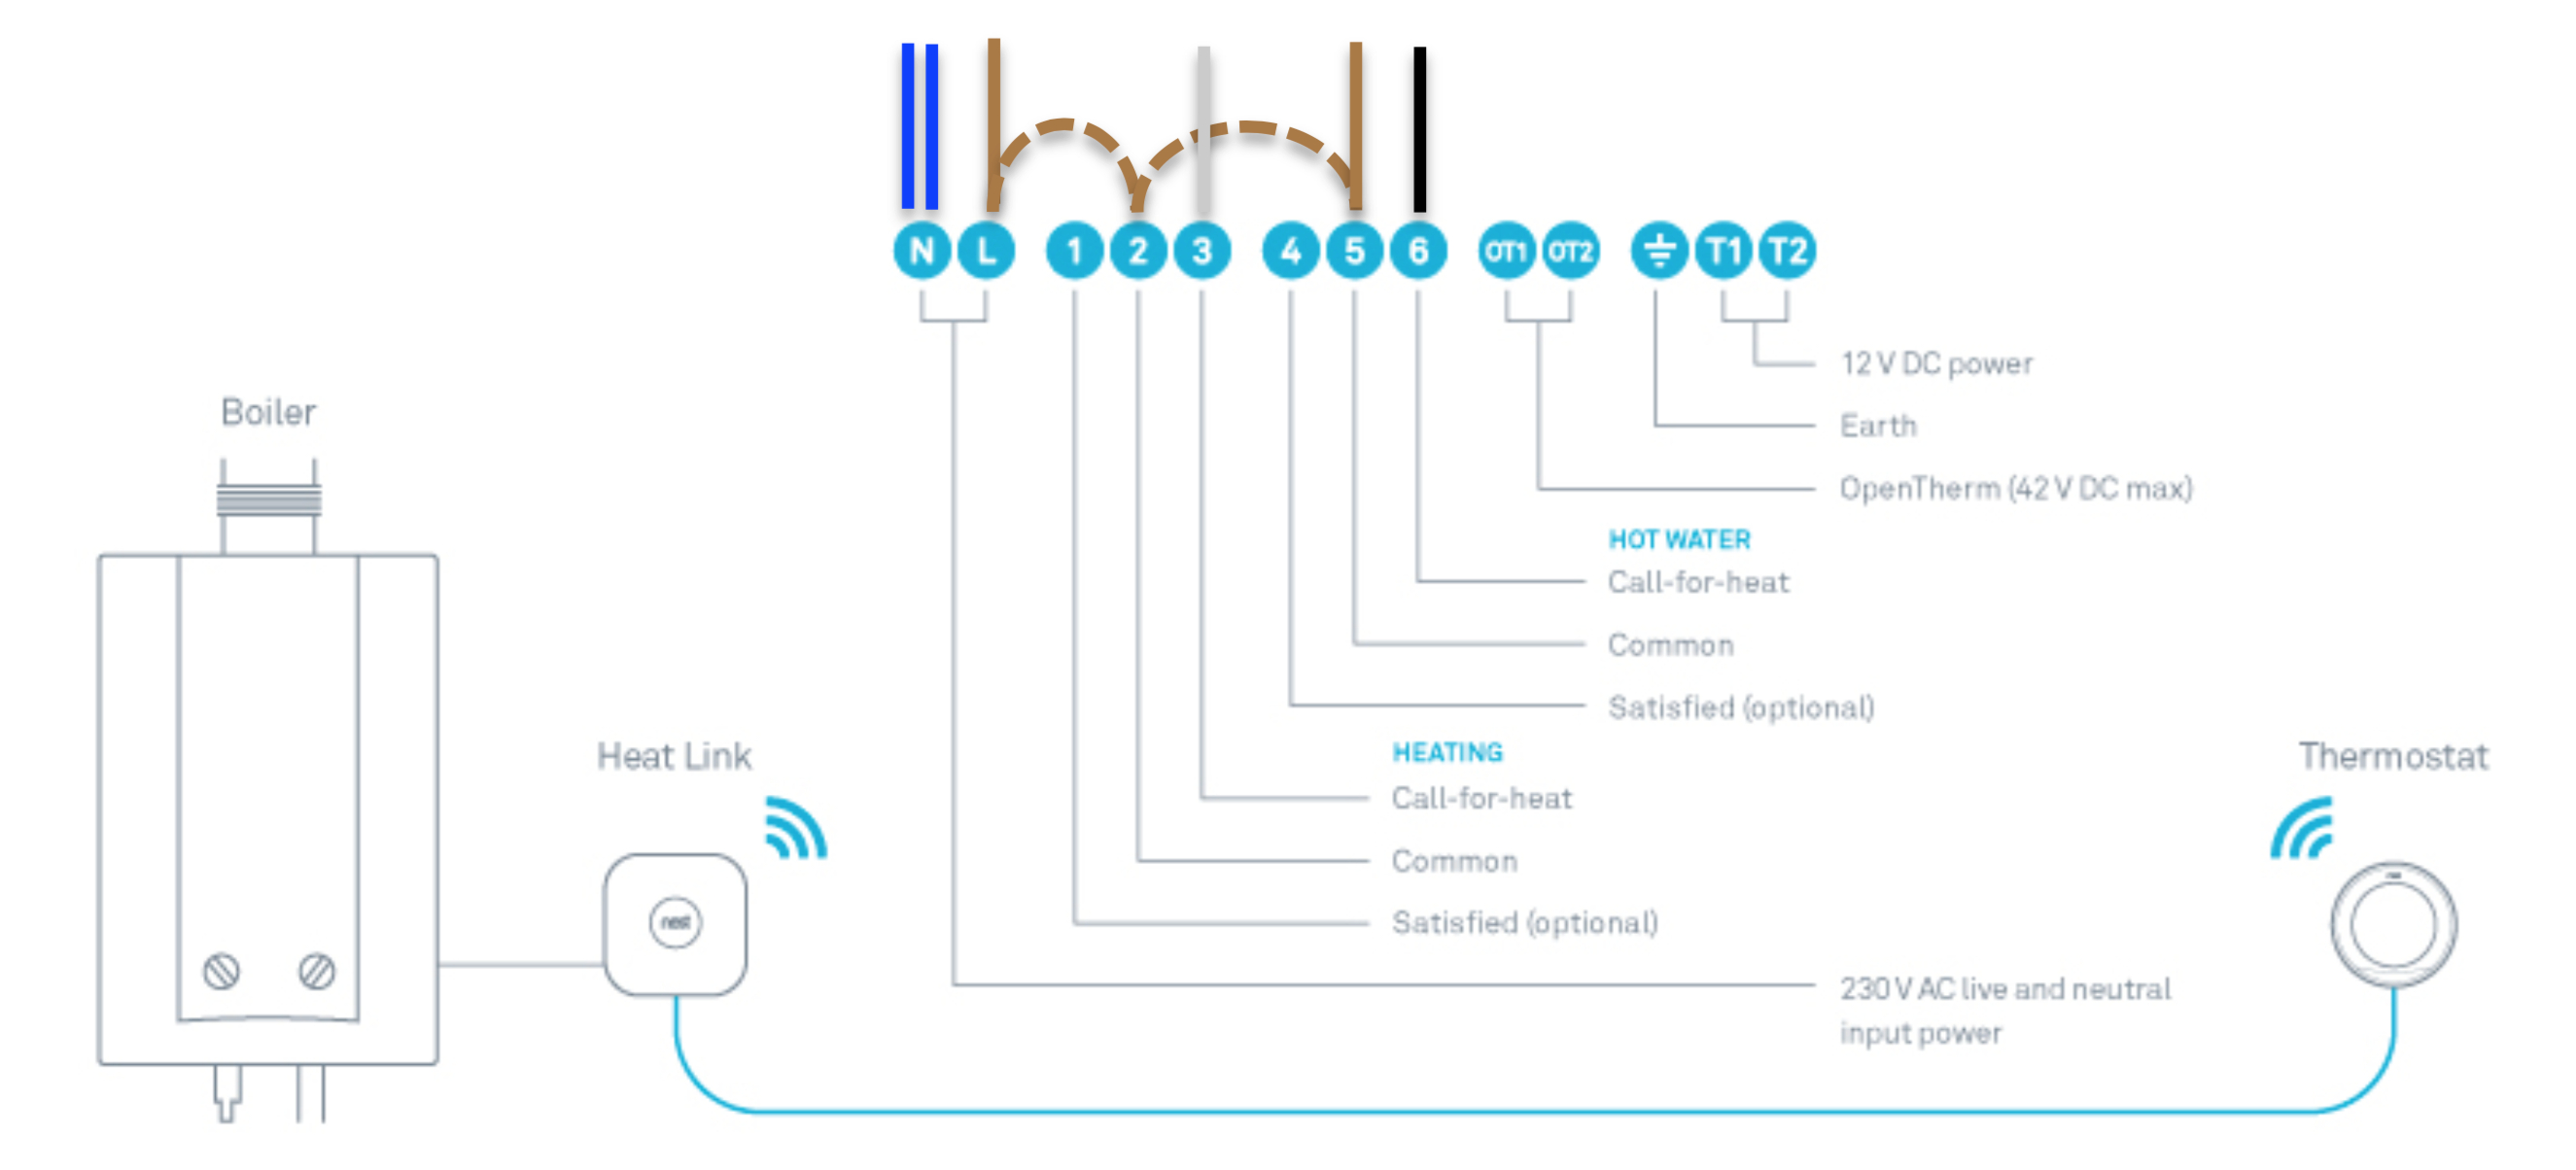 Nest 3rd Generation Wiring Diagram Uk Download Collection Home Heat Screen Shot 2016 02 At 21 45